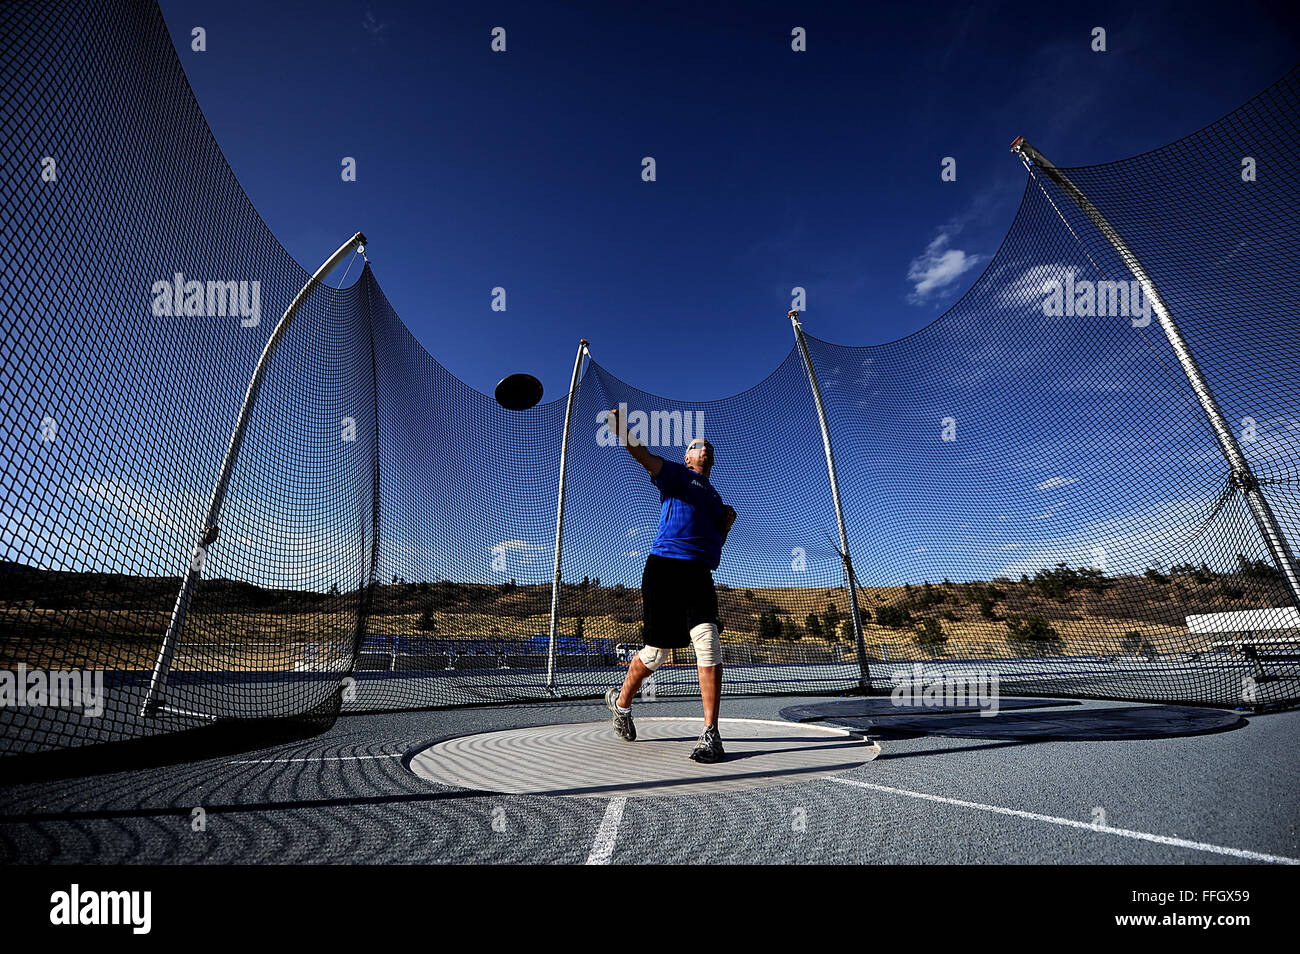 Retired Chief Master Sgt. Damian Orslene throws a discus during practice at the Air Force team's 2012 Warrior - Stock Image